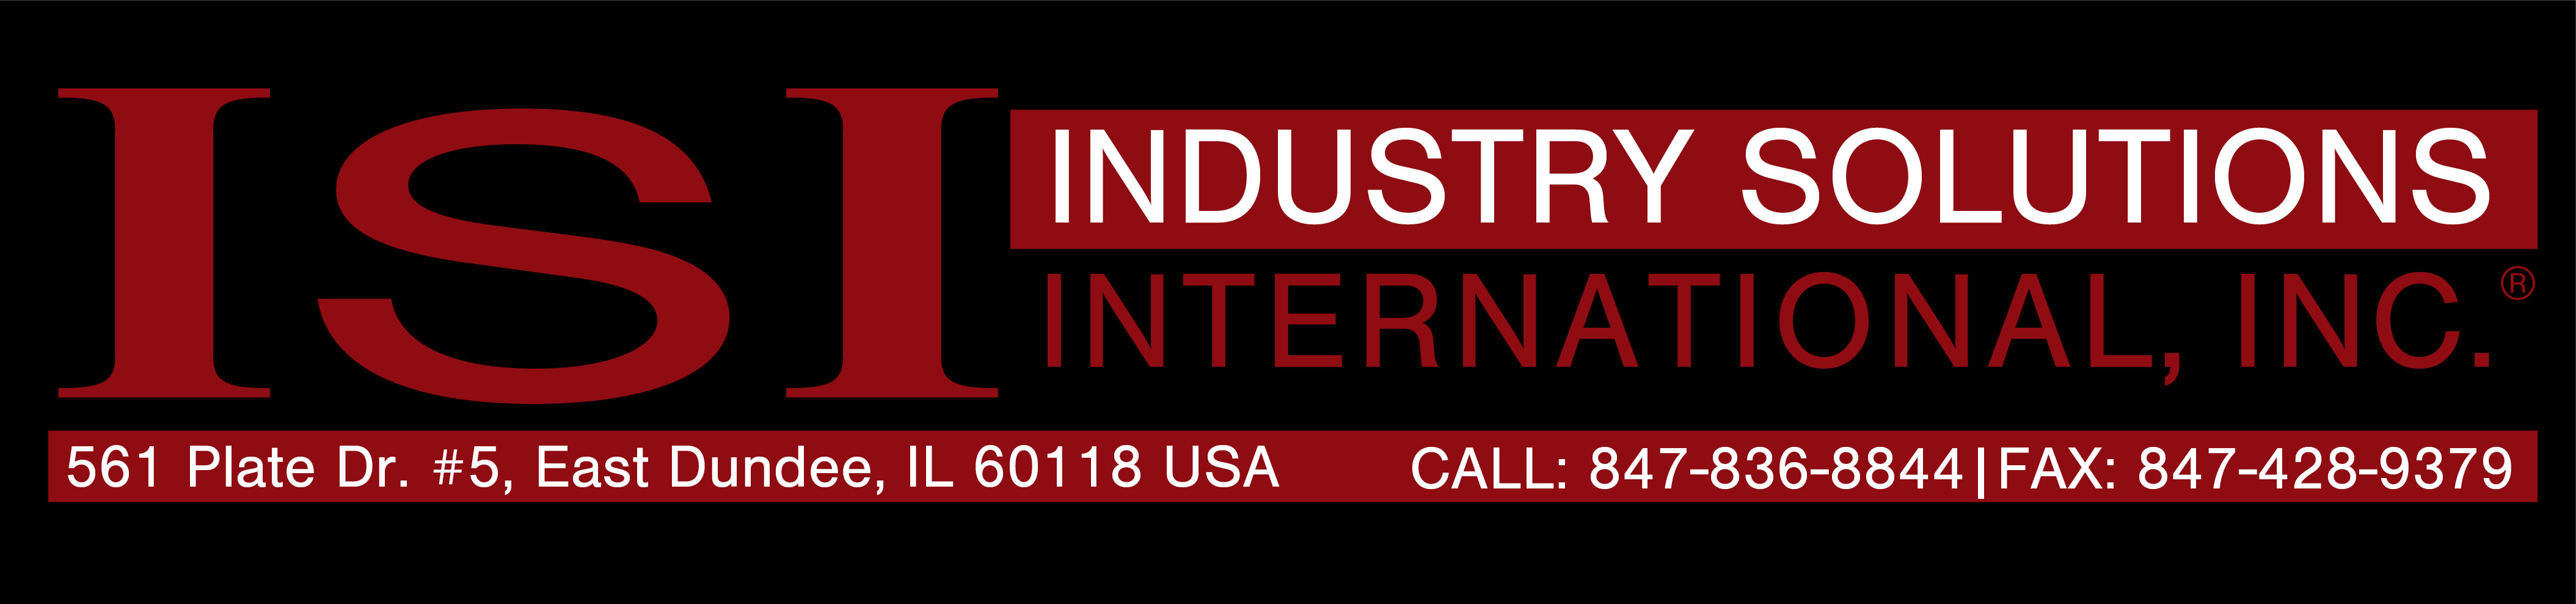 Industry Solutions International, Inc.